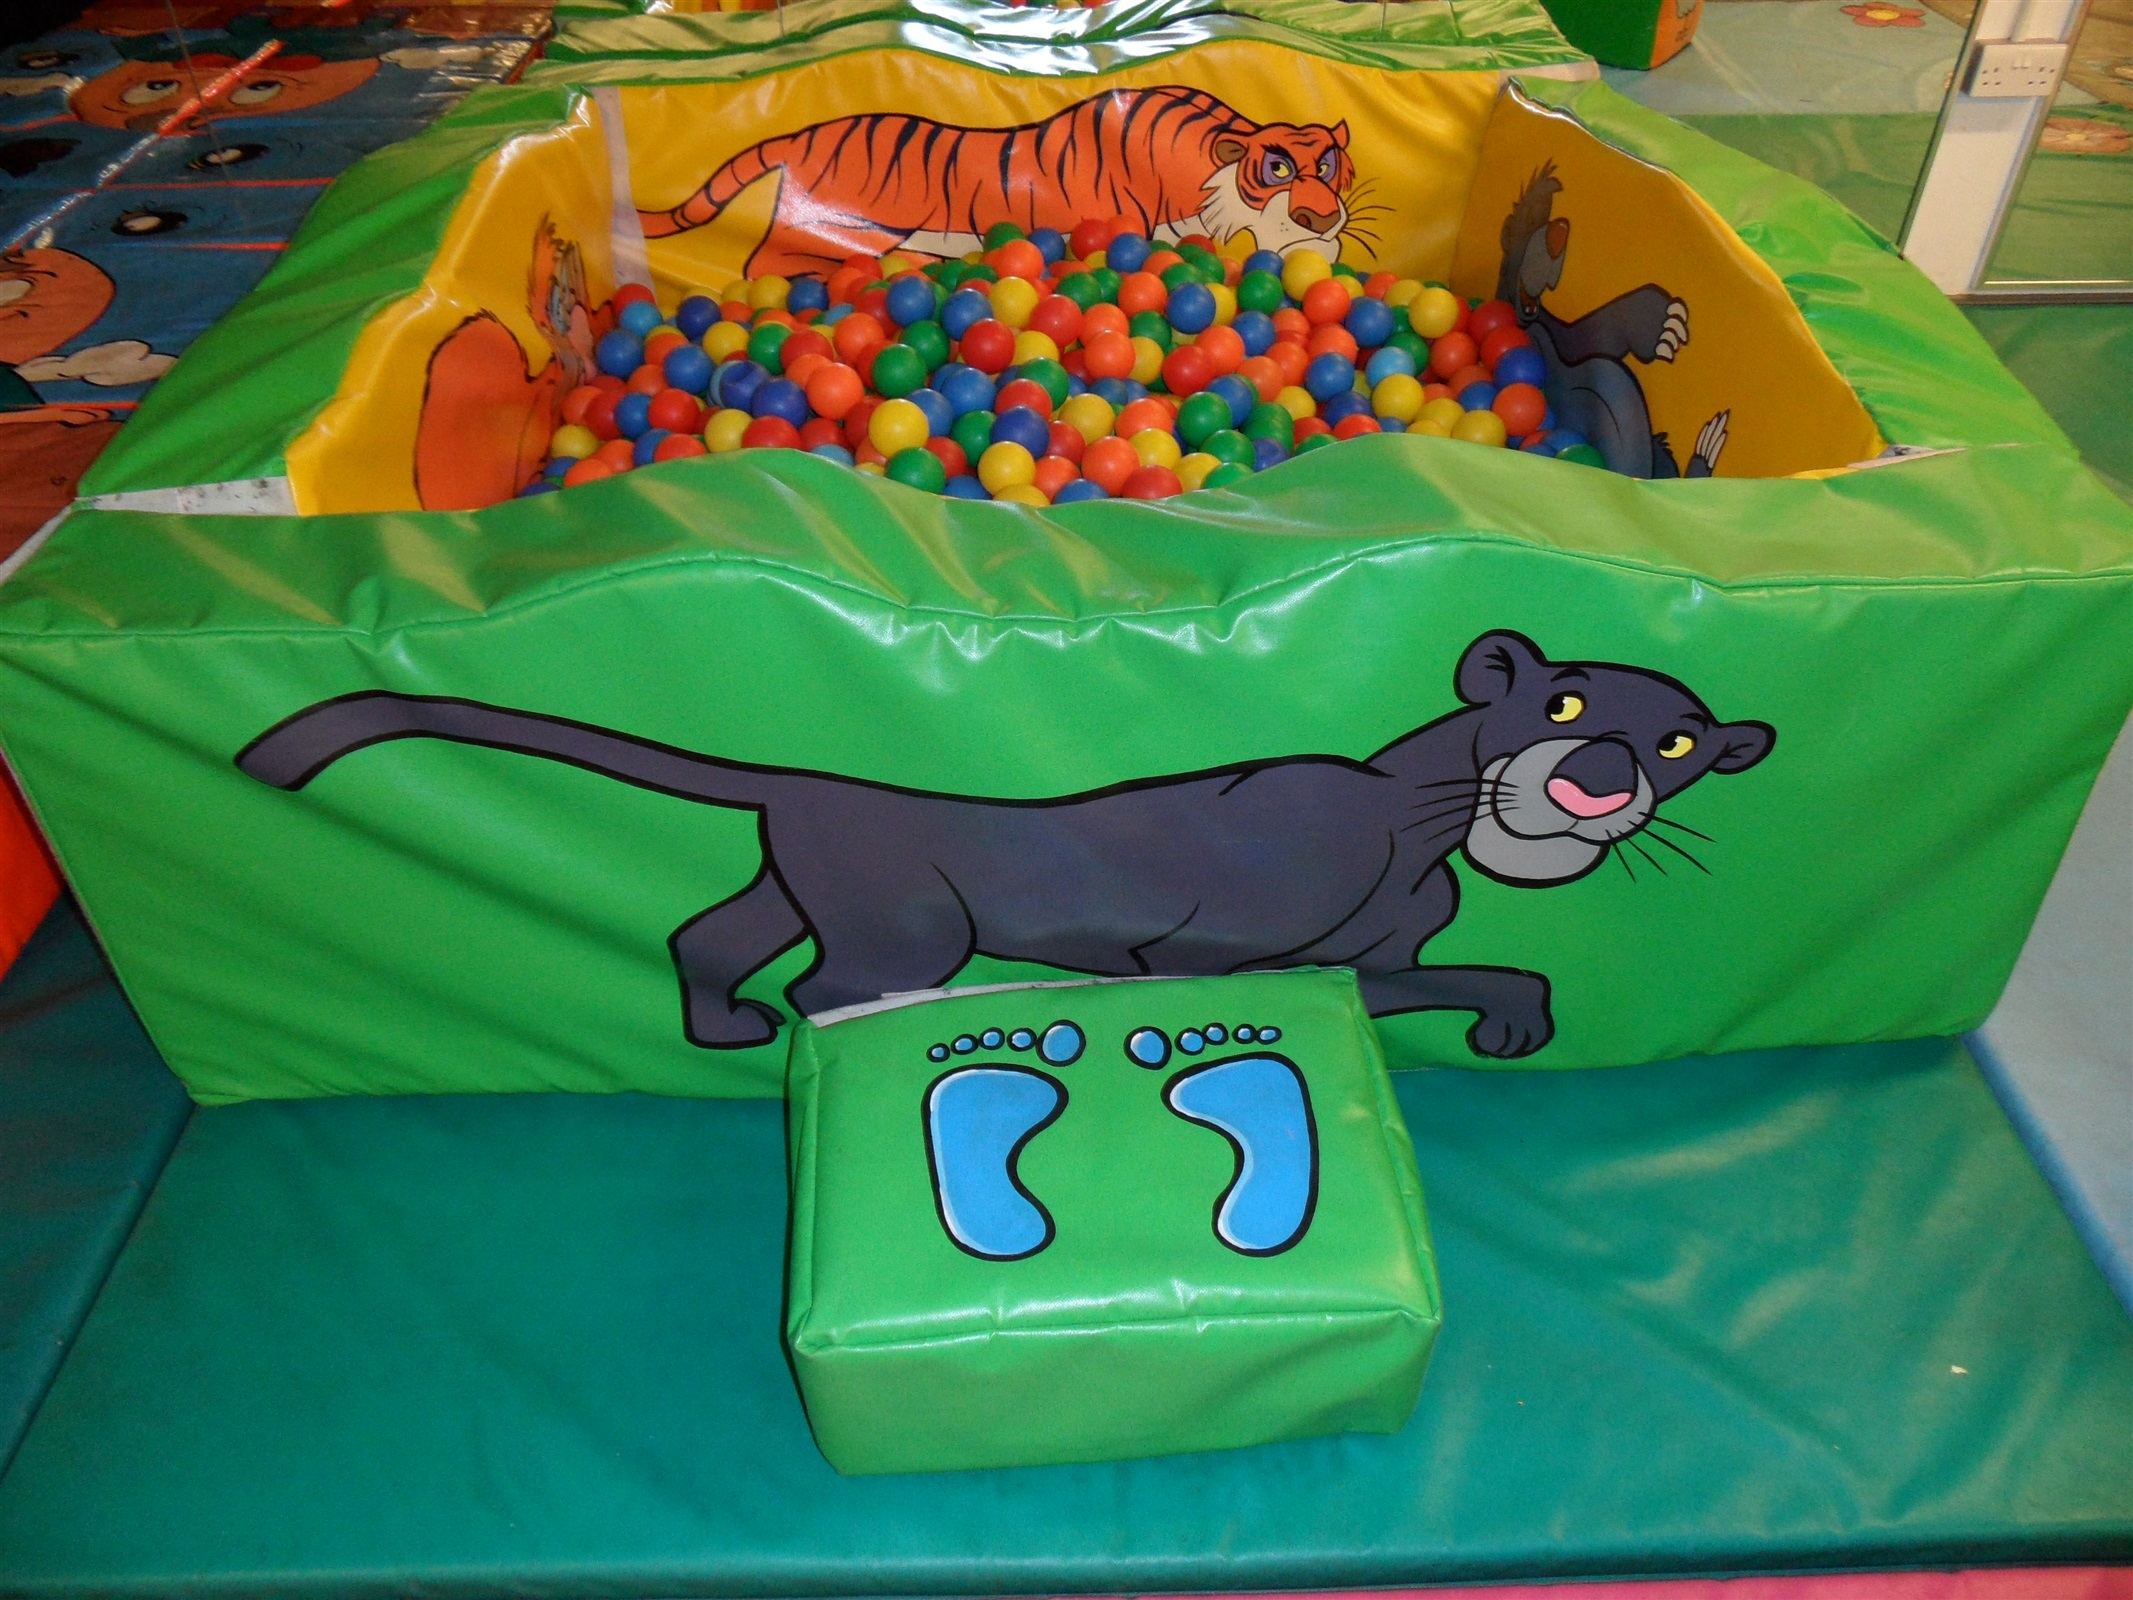 new build a bear party at home kent